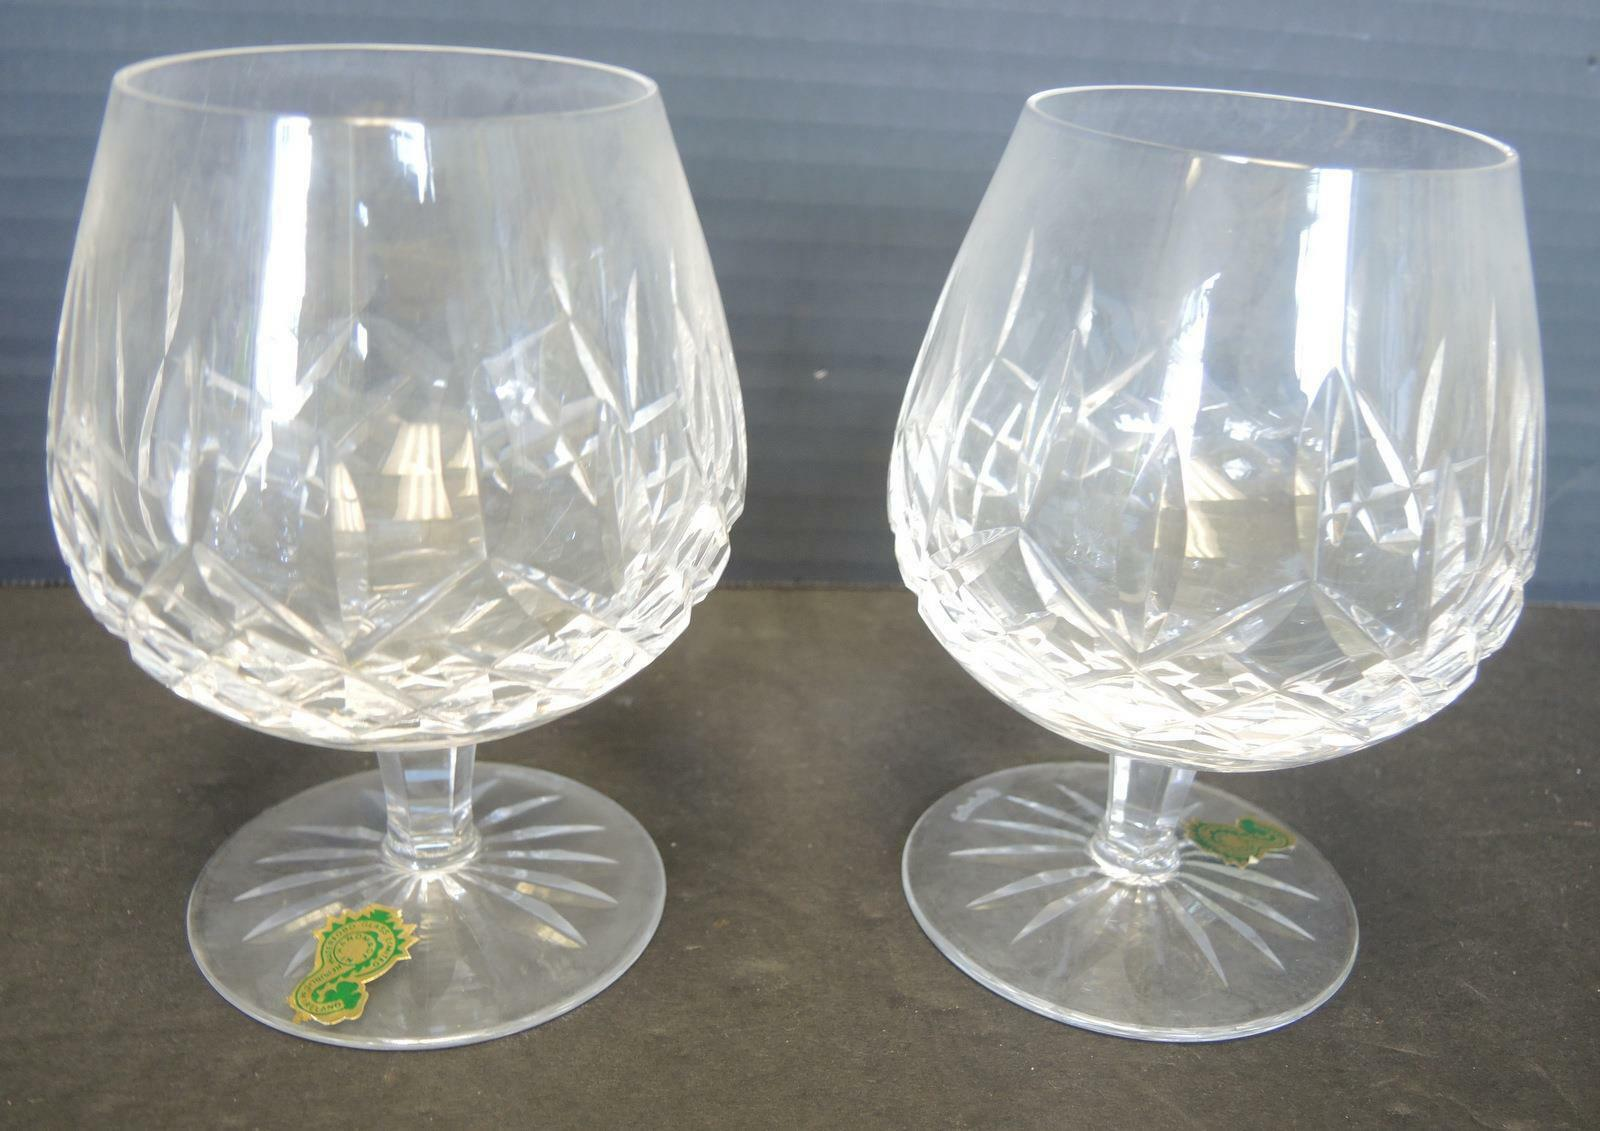 Primary image for Two Waterford Brand Snifters - Lismore Pattern - Never Used